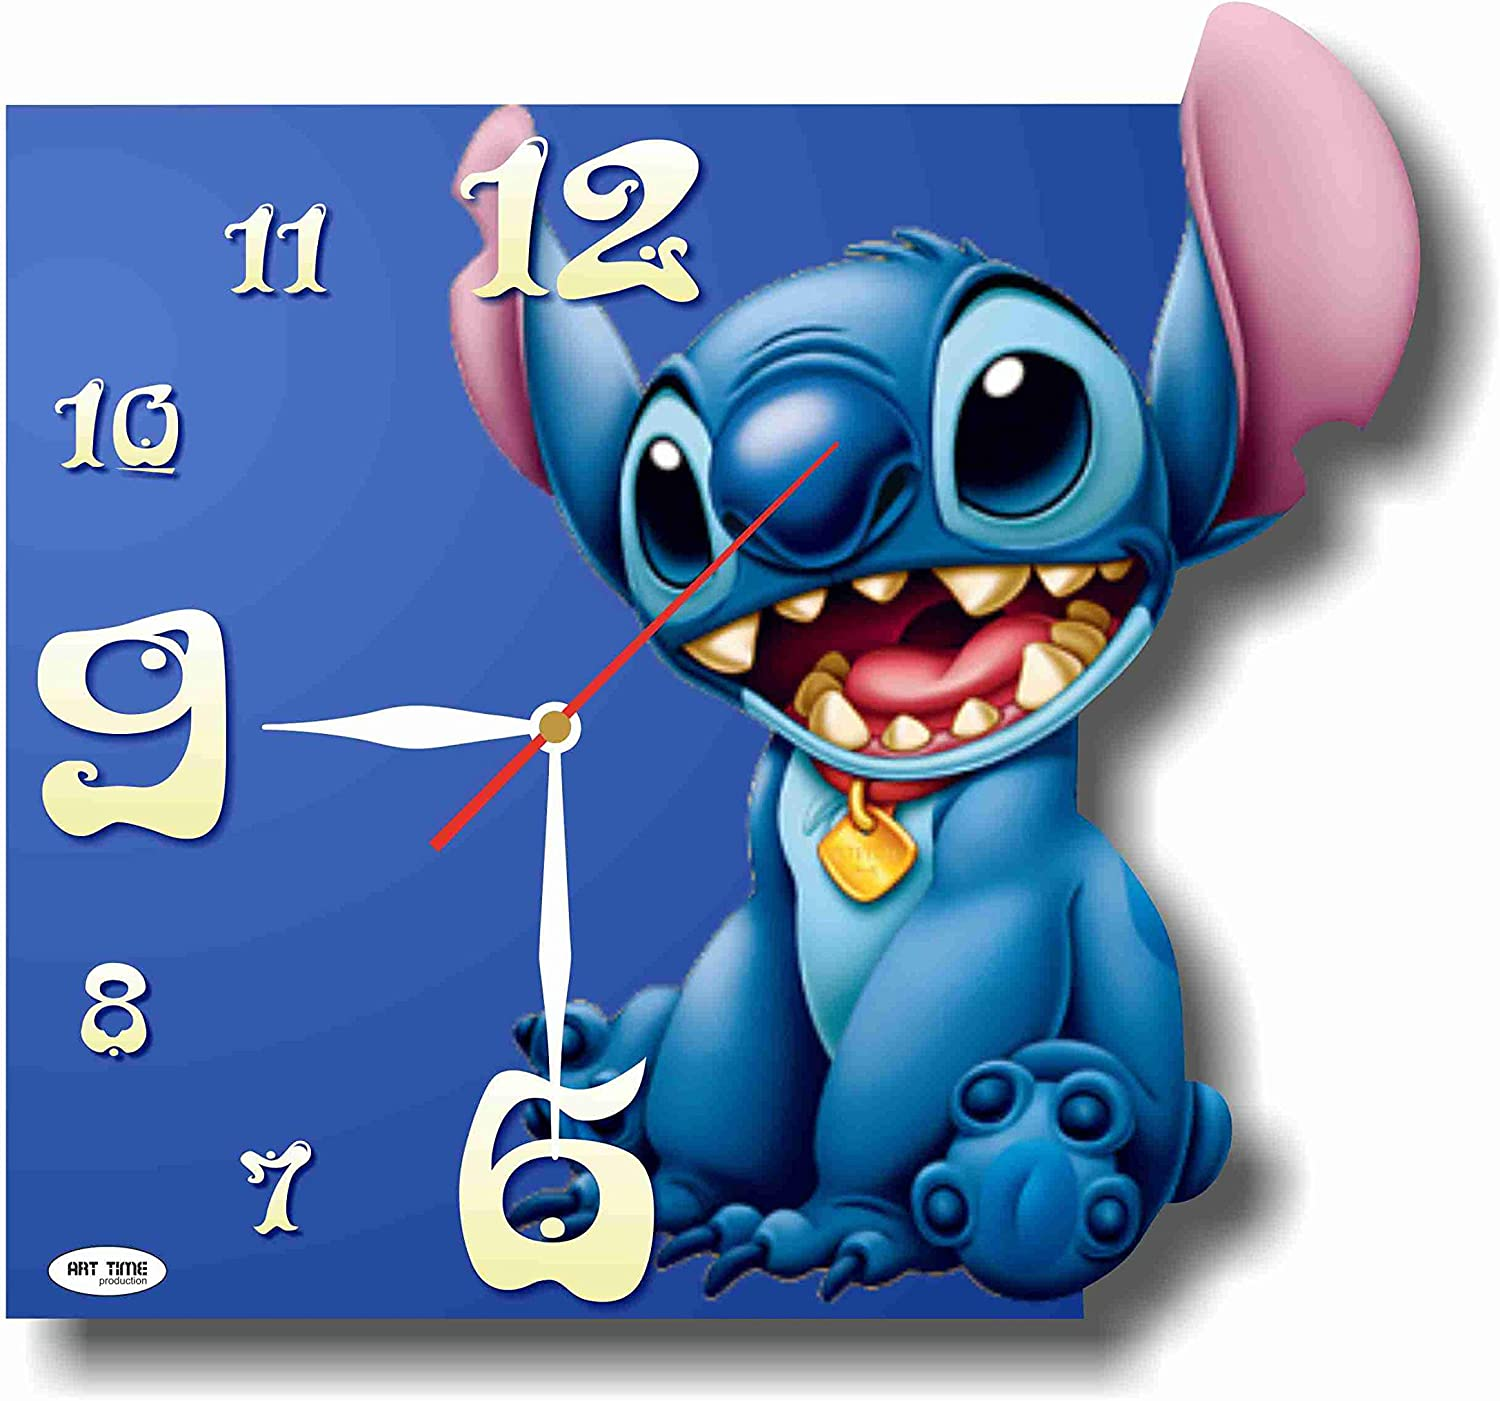 MAGIC WALL CLOCK FOR DISNEY FANS Lilo & Stitch 11'' Handmade Made of Acrylic Glass - Get Unique décor for Home or Office – Best Gift Ideas for Kids, Friends, Parents and Your Soul Mates